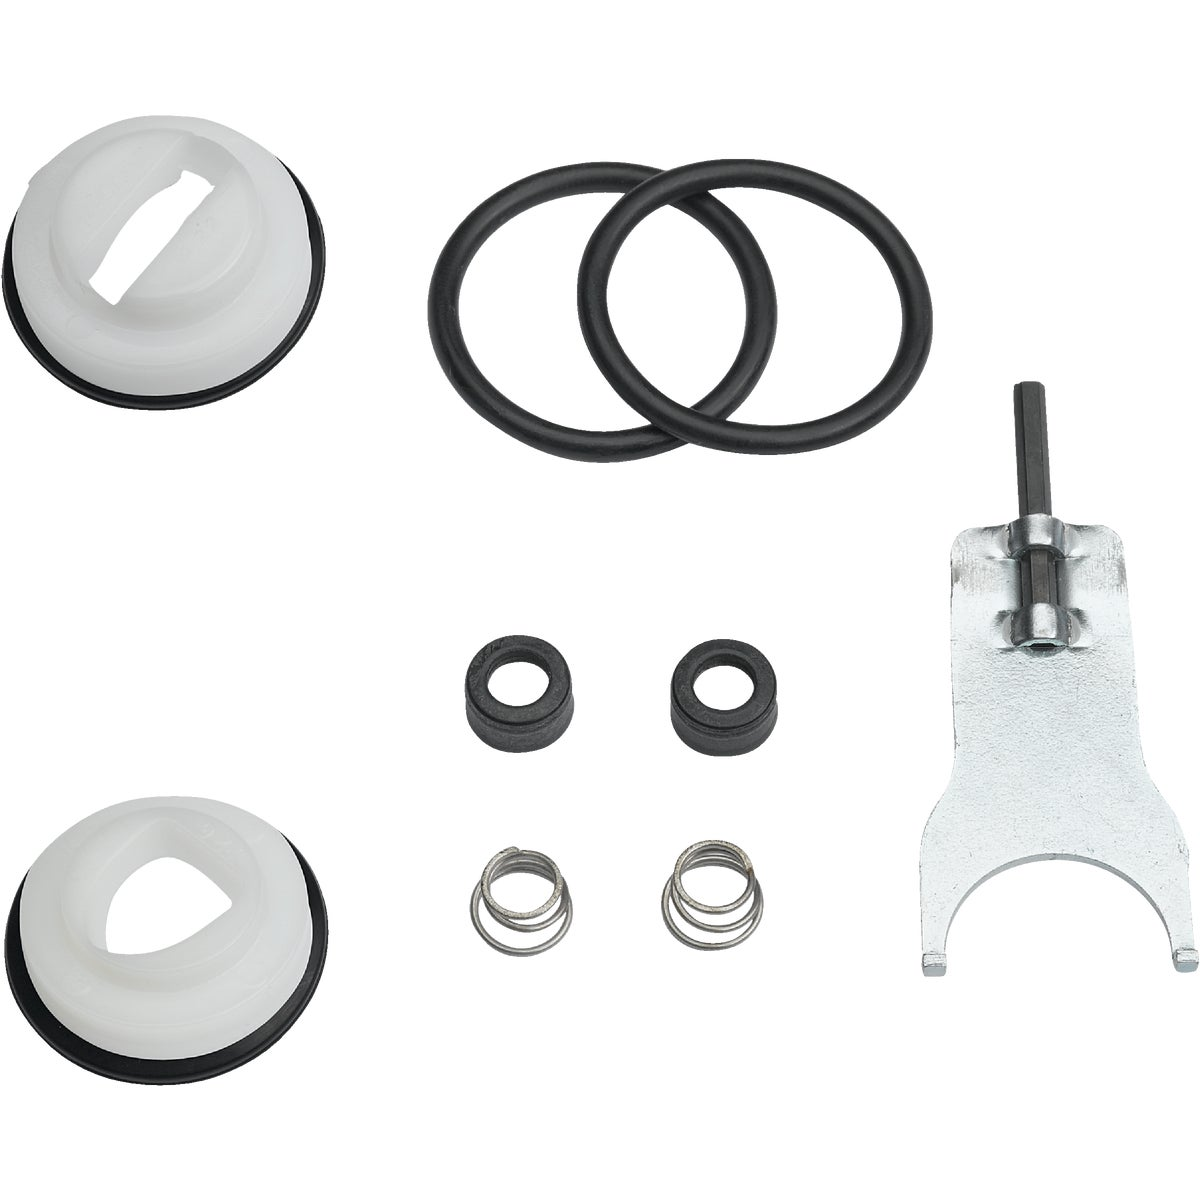 1-HDL FAUCET REPAIR KIT - RP3614 by Delta Faucet Co